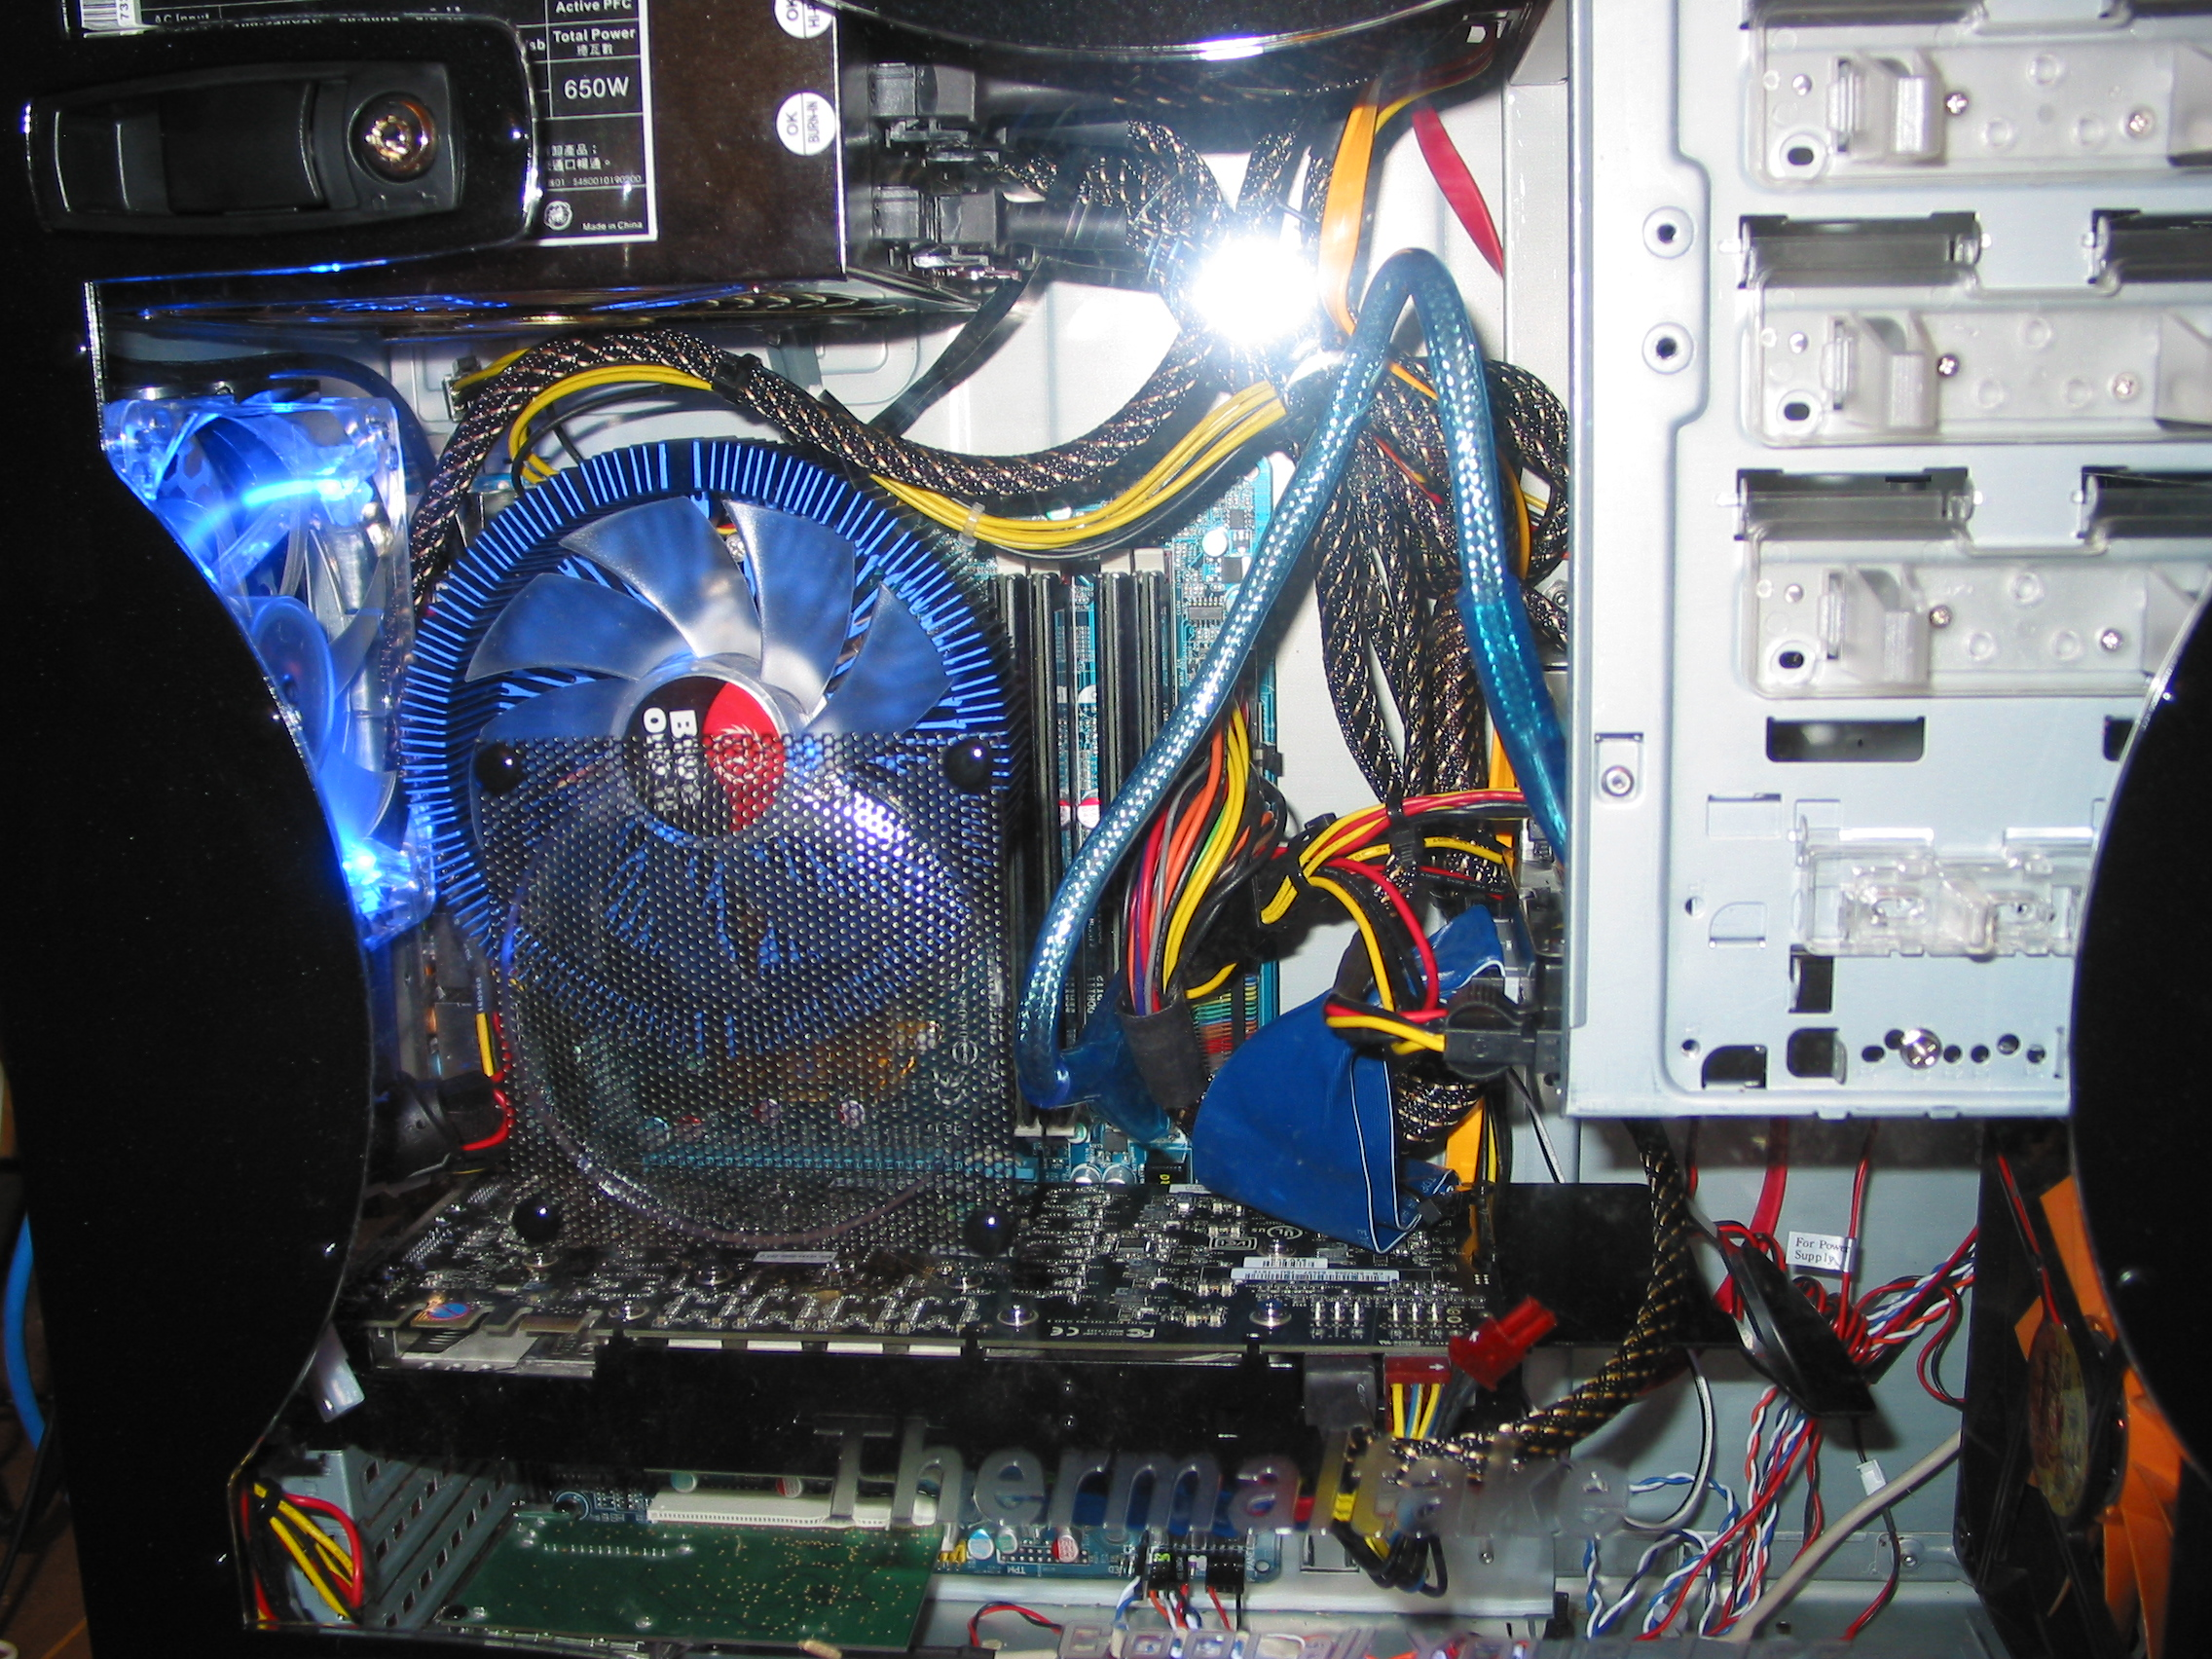 Gigabyte 965P-DS3 Motherboard - 4GB DDR 2 4,4,4,12 corsair RAM - 500GB WD HDD - Quad Core 2.4 OC @ 2.7ghz - 8800GTX Graphics Card - Enermax 650w PSU - Blue Orb II